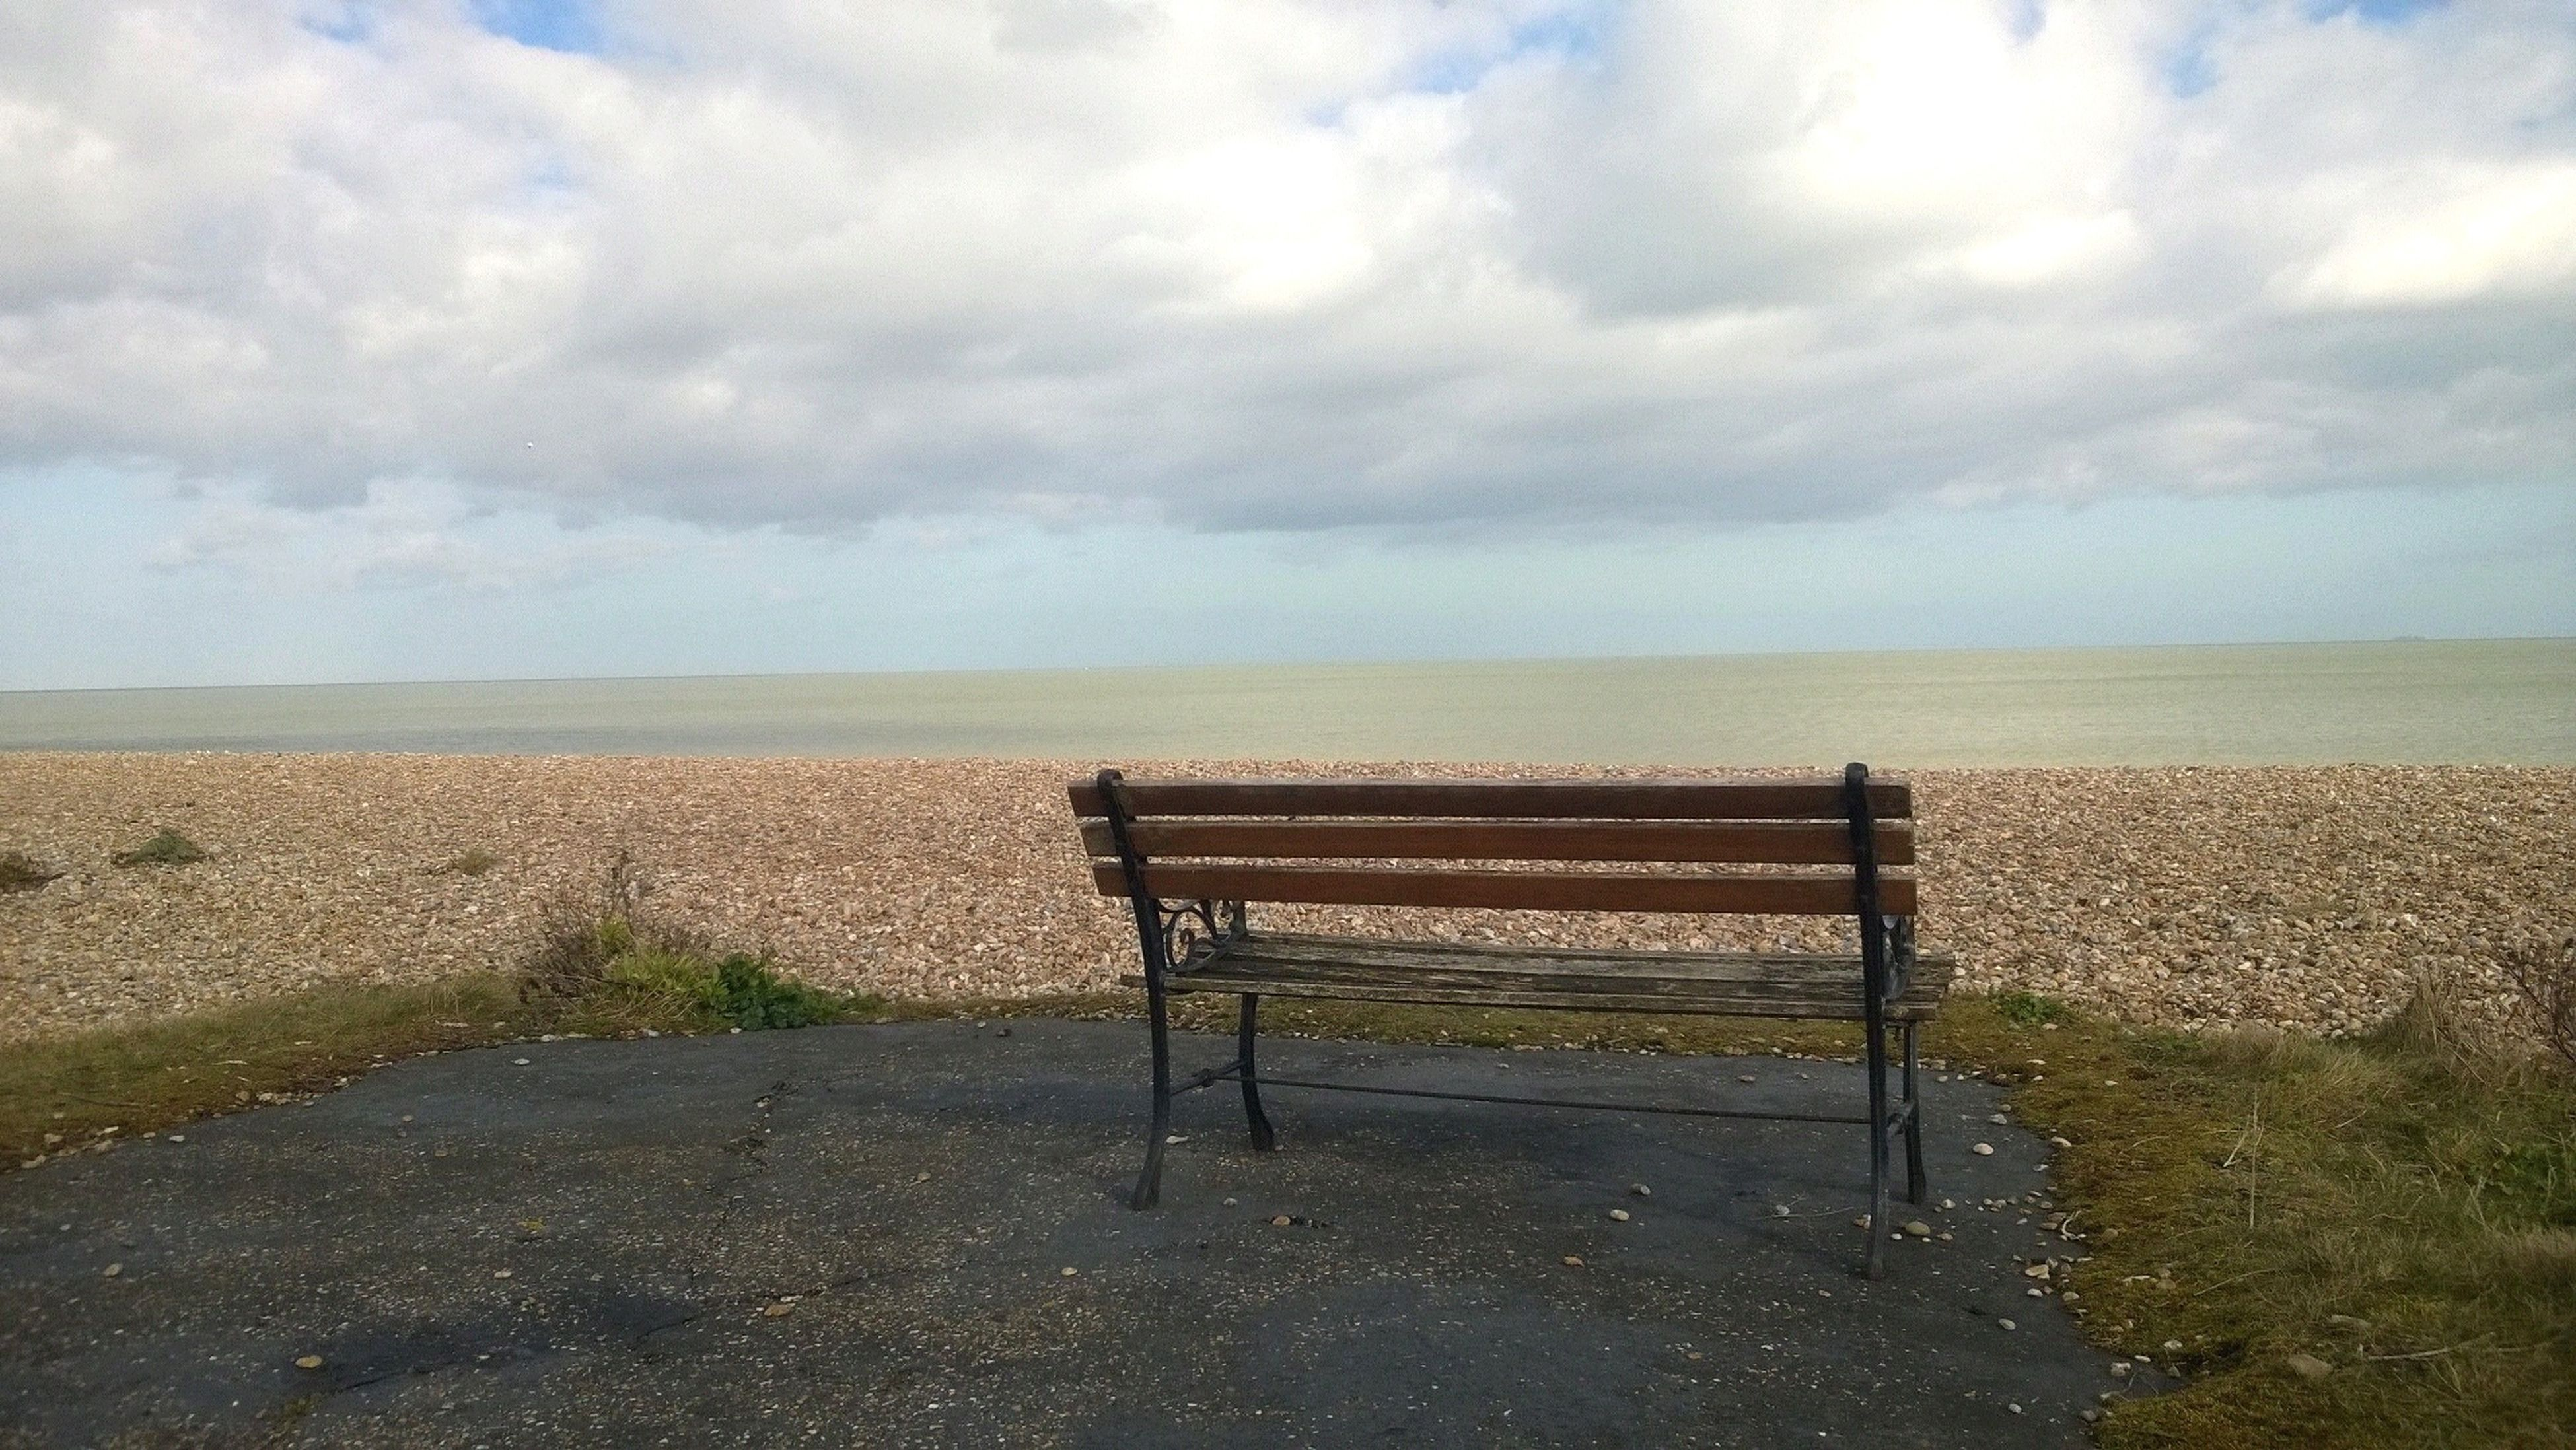 sea, sky, horizon over water, beach, tranquil scene, tranquility, water, scenics, empty, cloud - sky, beauty in nature, nature, shore, sand, absence, cloudy, bench, cloud, idyllic, day